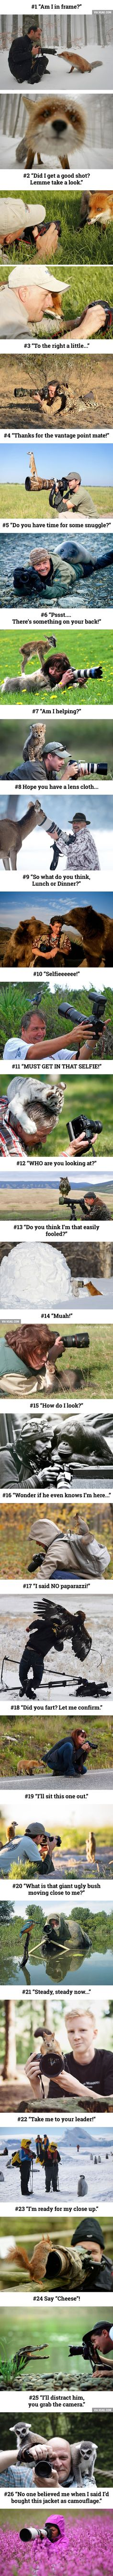 20+ Reasons Why Being A Nature Photographer Is The Best Job In The World - 9GAG